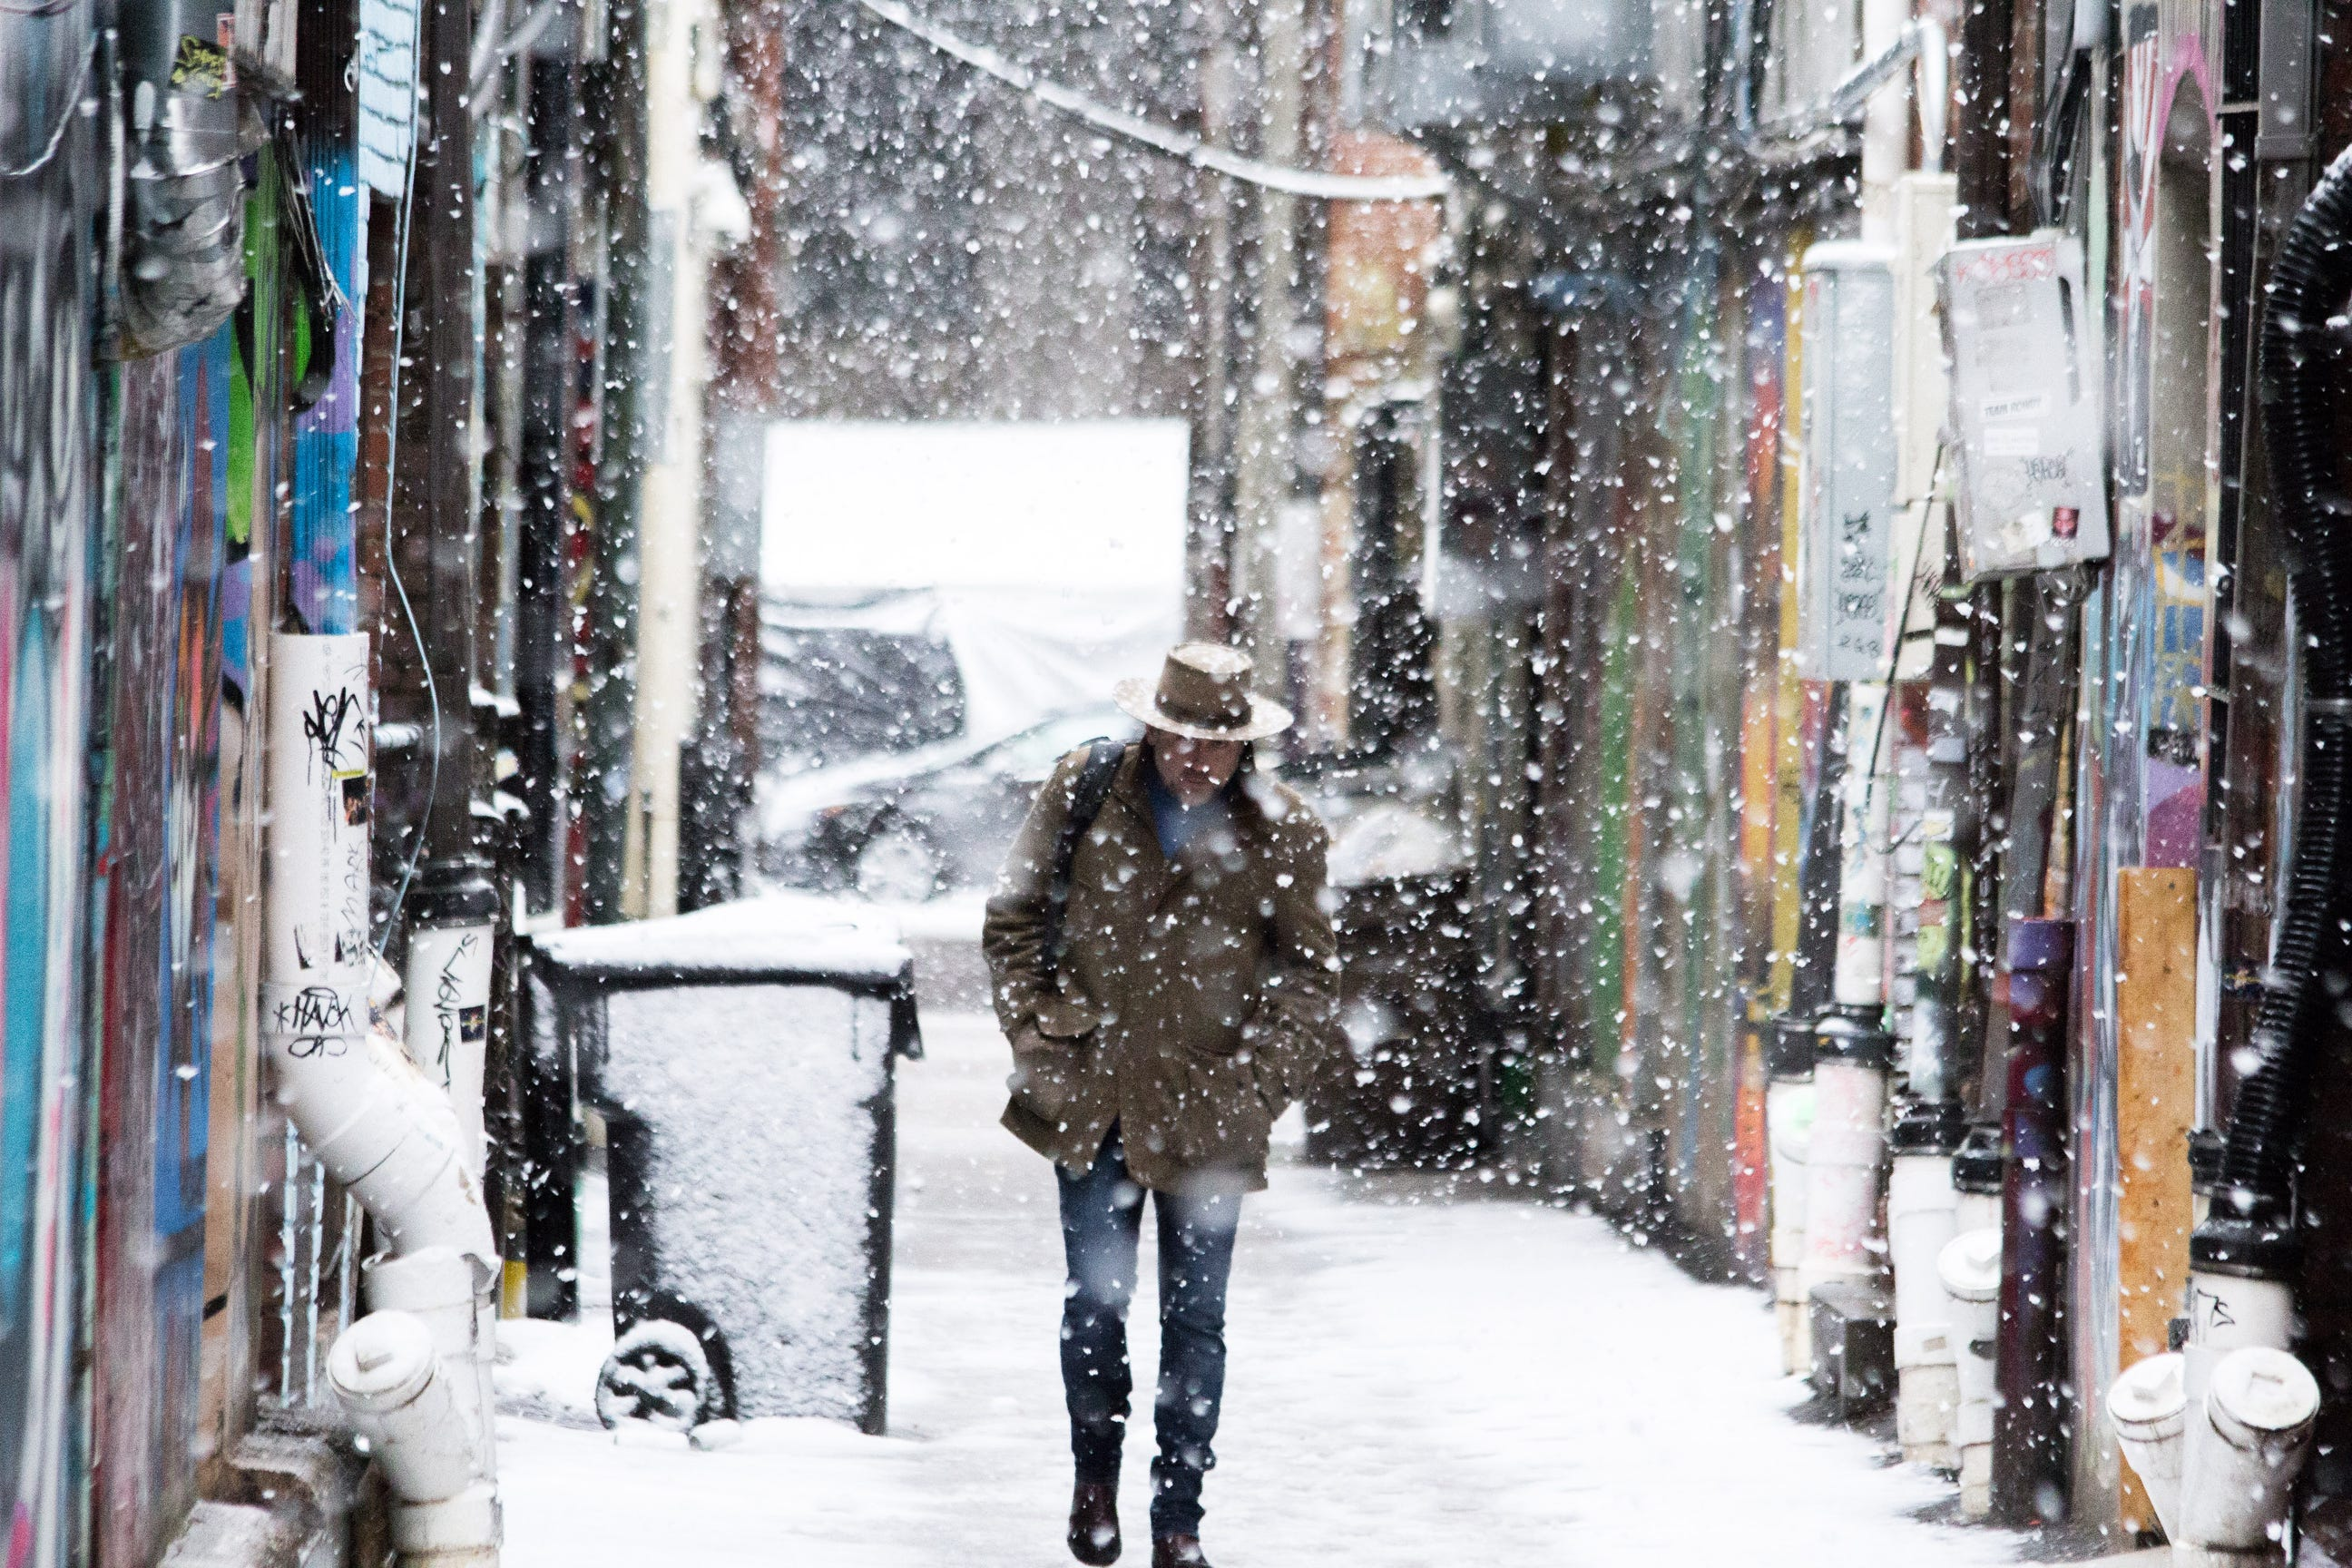 Winter storm pummels southeast with snow and sleet